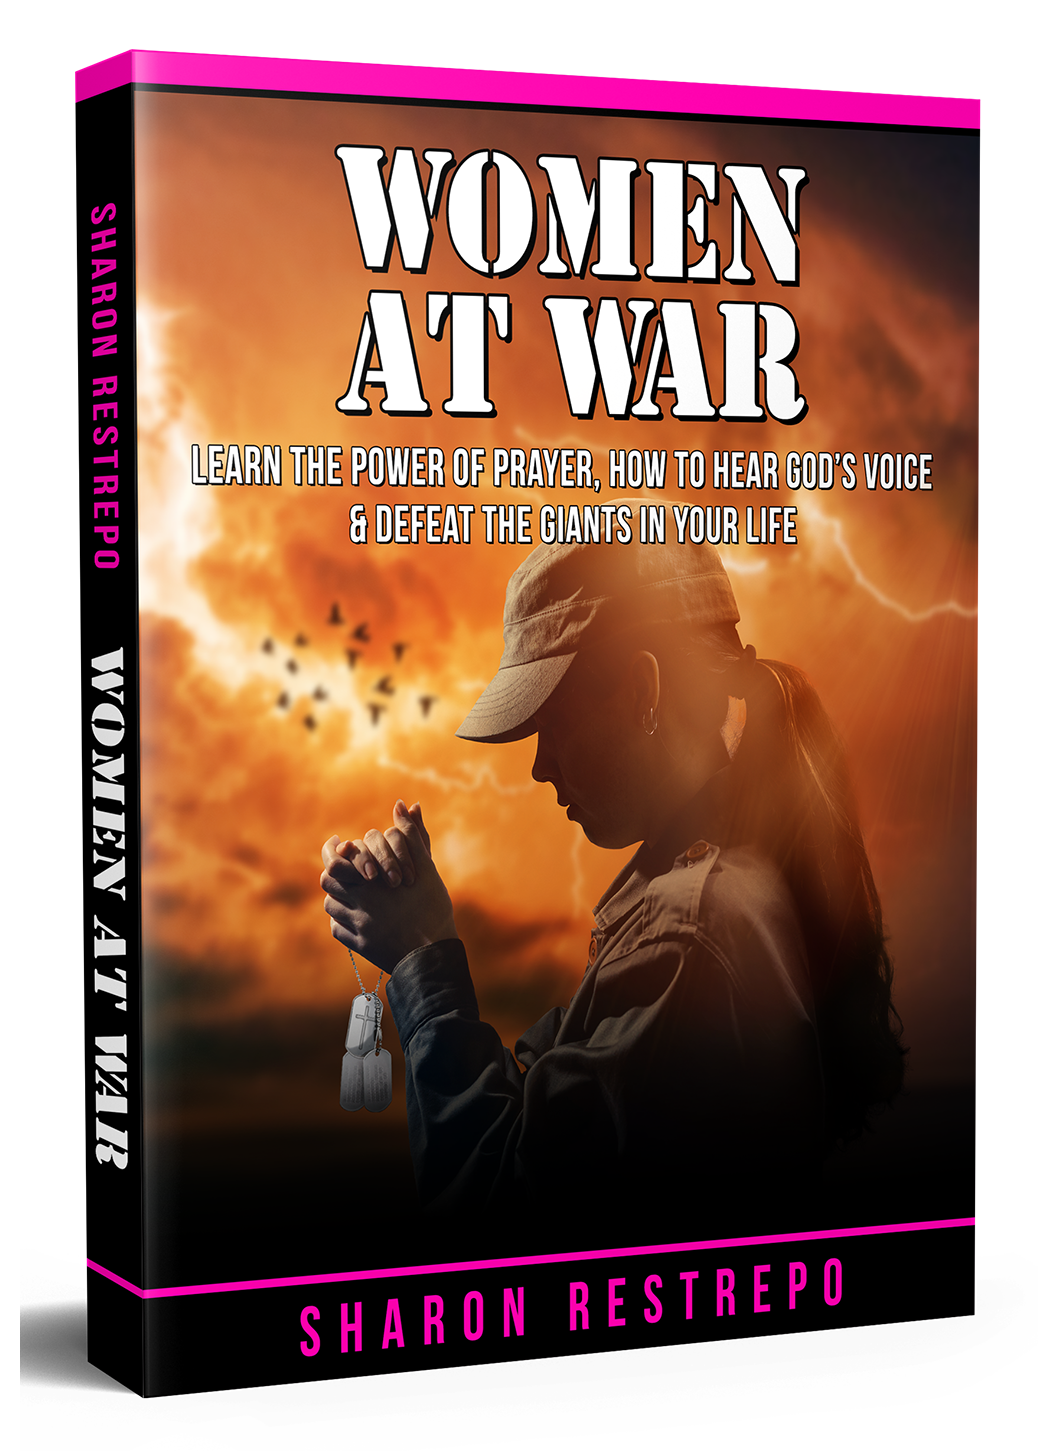 Women at War book with picture of female soldier praying